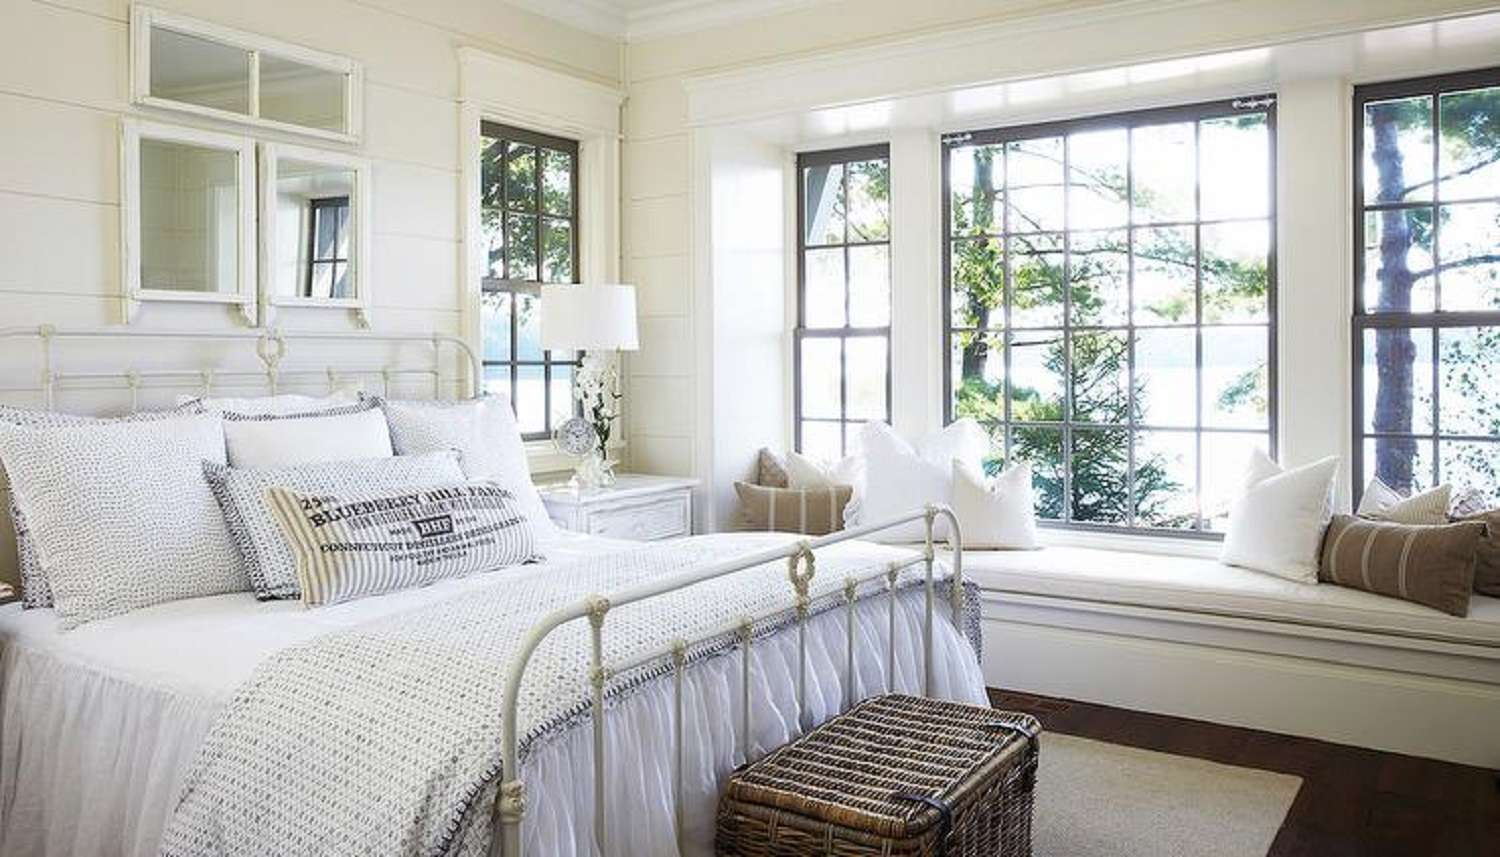 Peaceful country bedroom